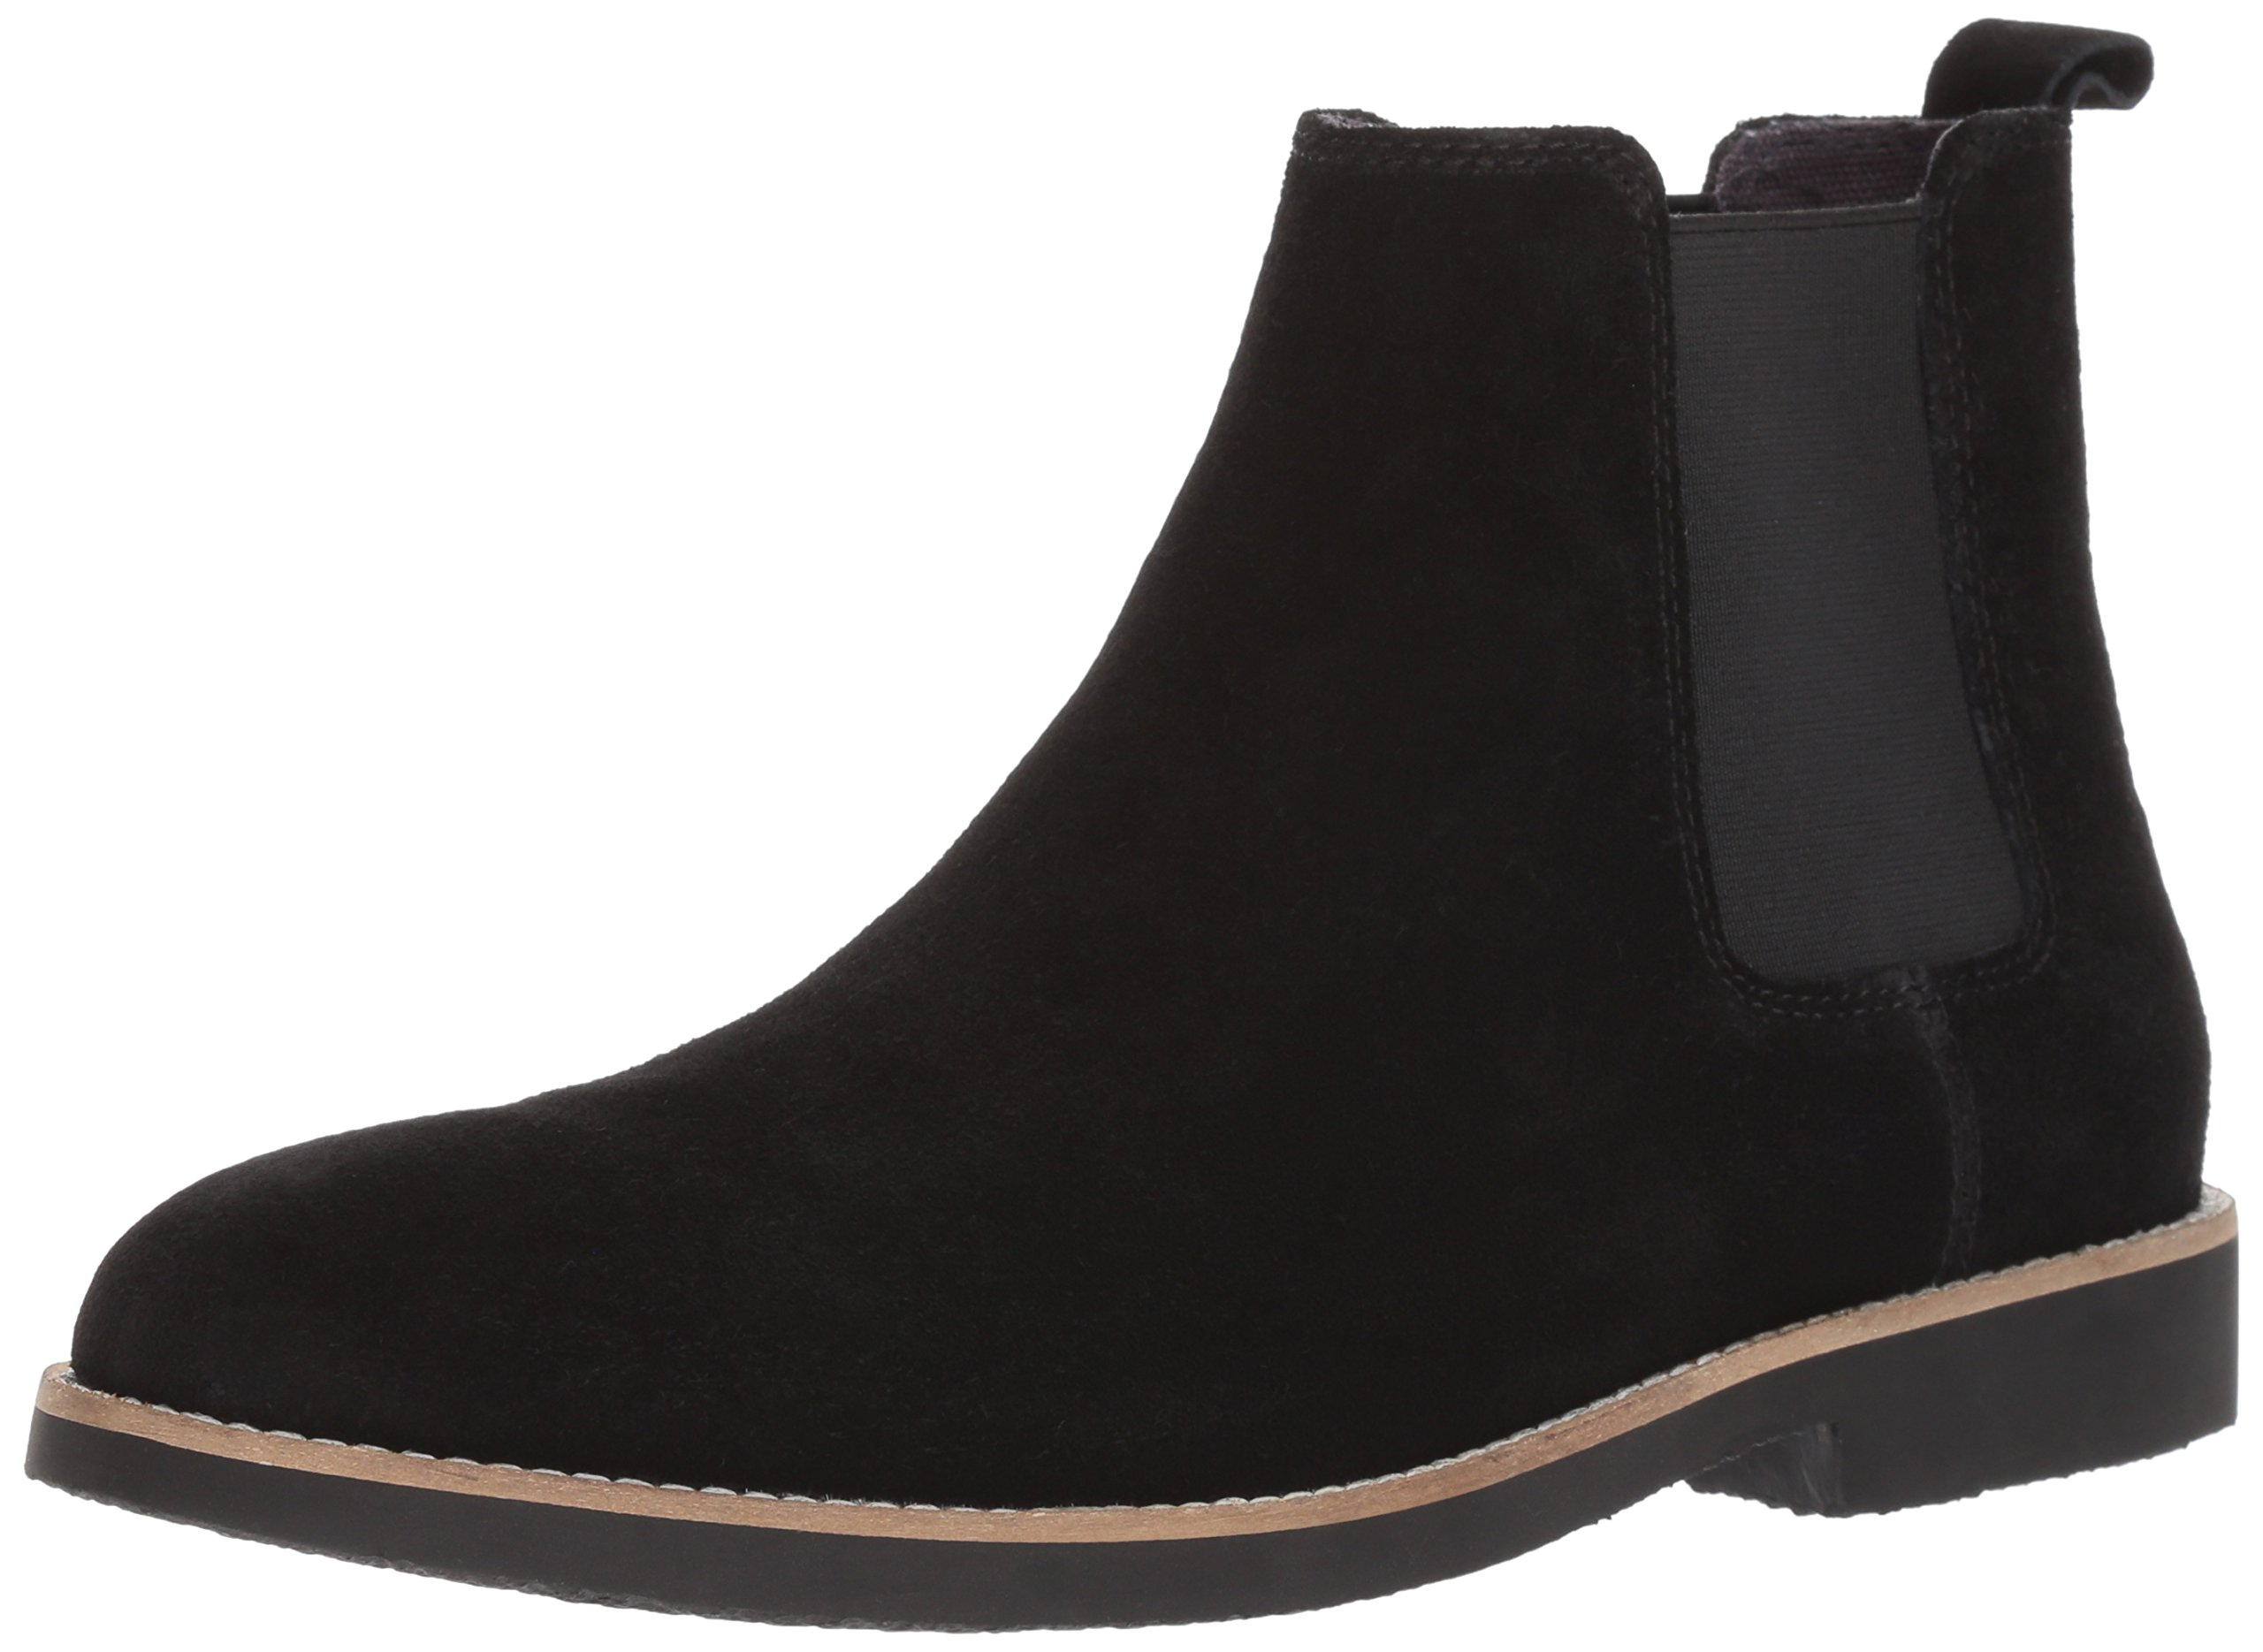 Dr. Scholl's Shoes Men's Credence Chelsea Boot, Black Suede, 10 M US